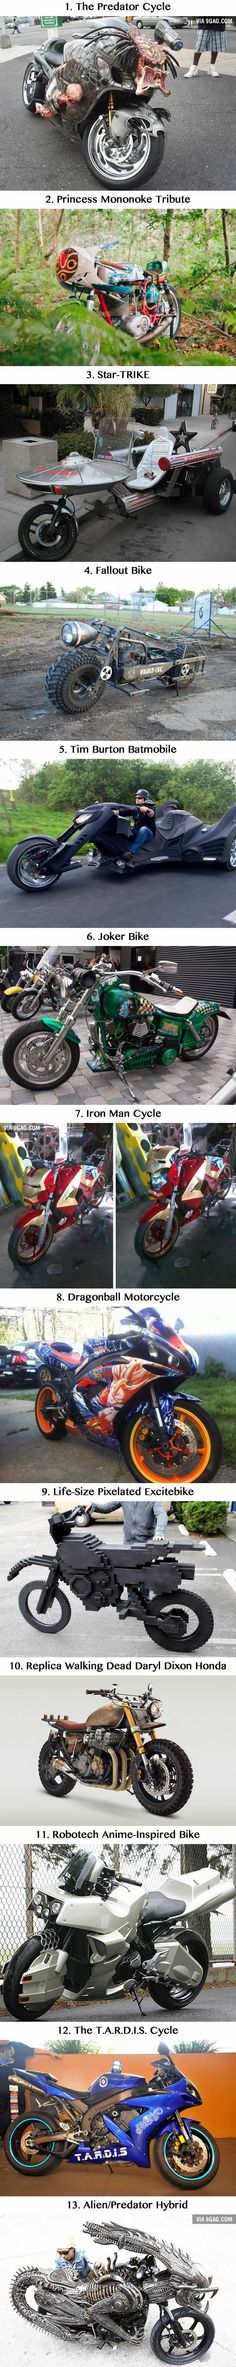 13 Geeky Motorcycles That Will Give You a Serious Case of Road Rash